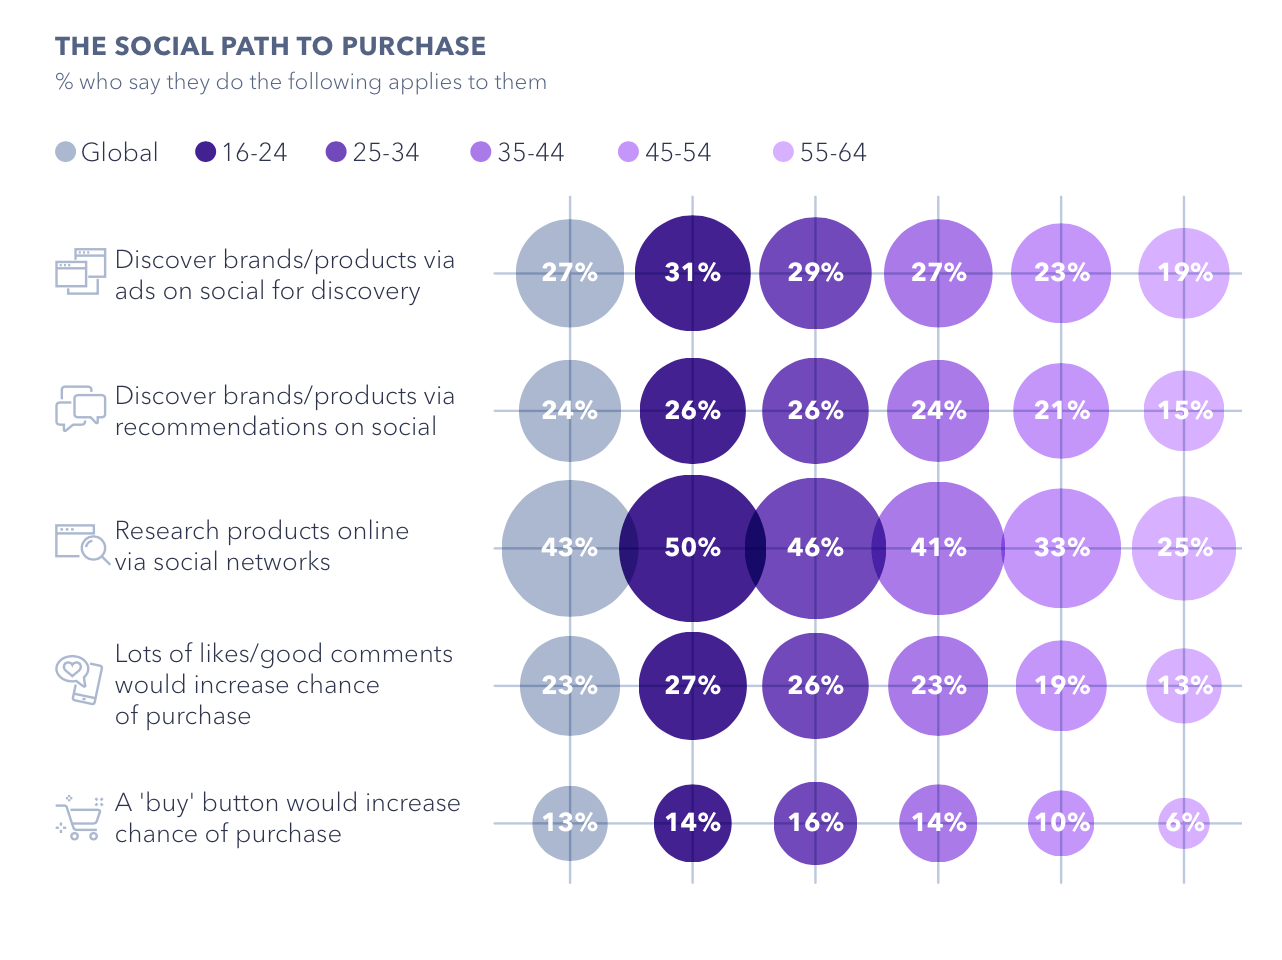 data for percentage of people whose purchase decisions are influenced by social media